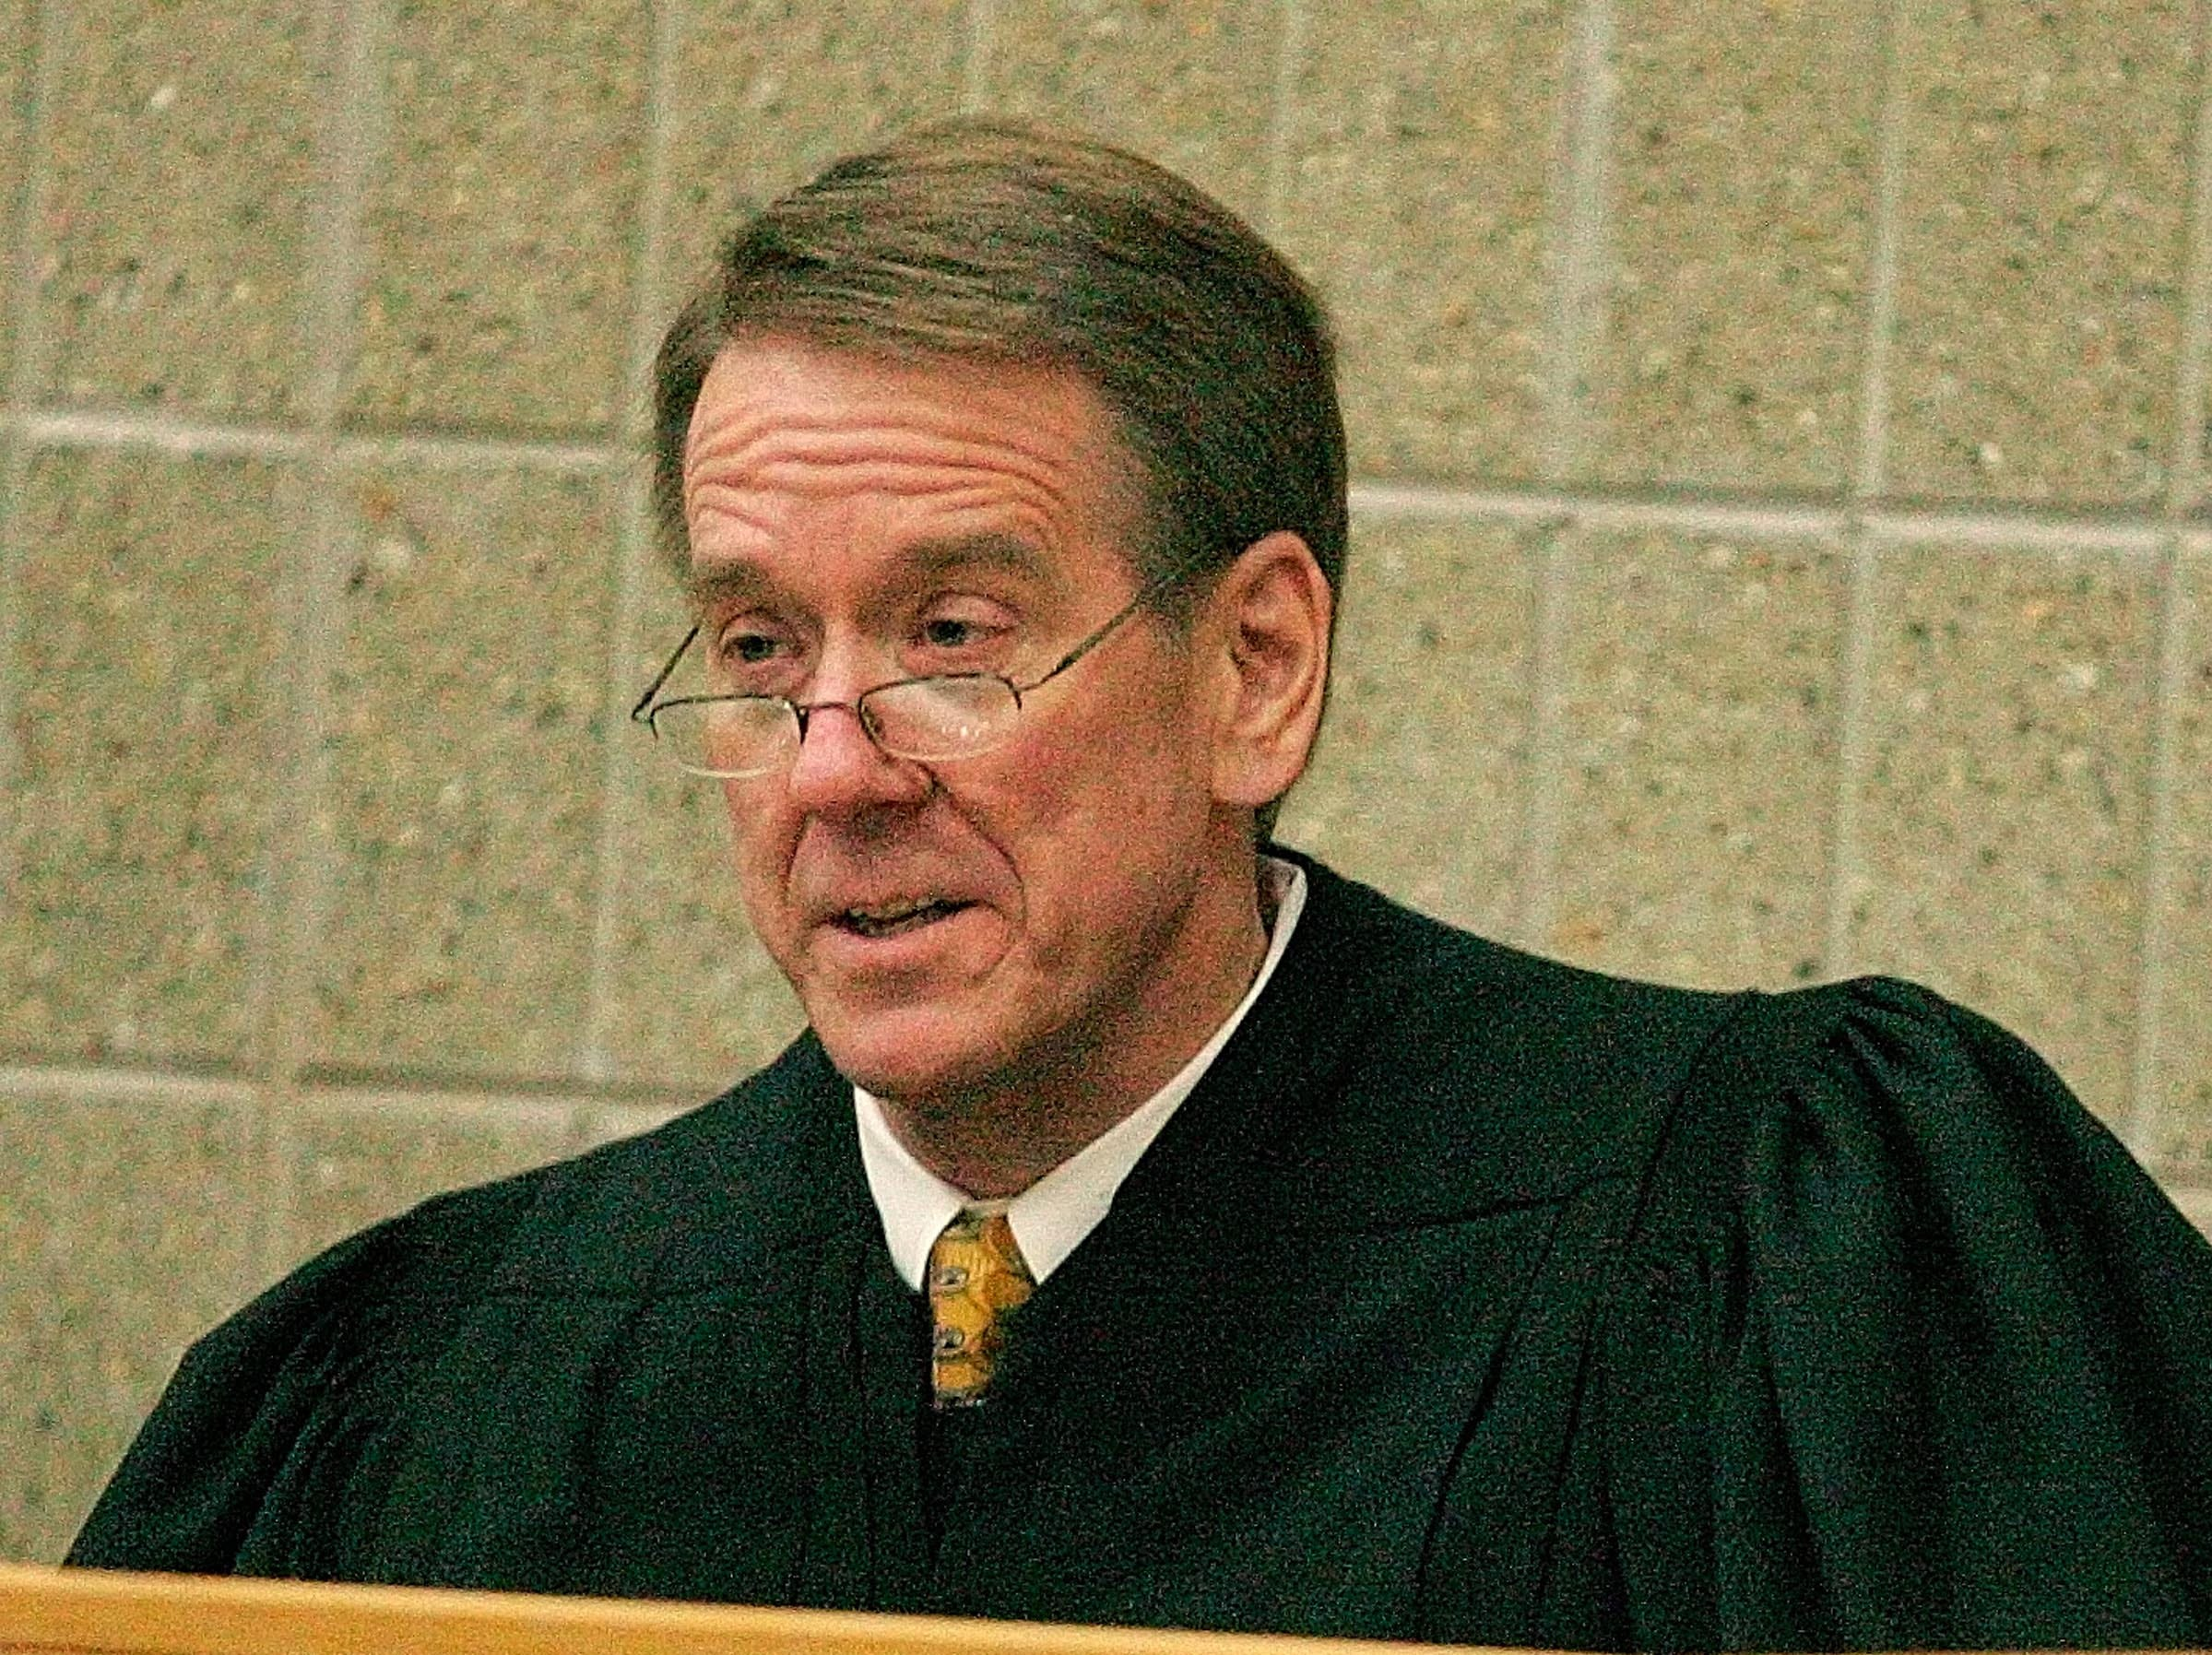 South Dakota Supreme Court Justice Steven L. Zinter asks questions about the case of Dillon v. Weber in Vermillion in 2007.